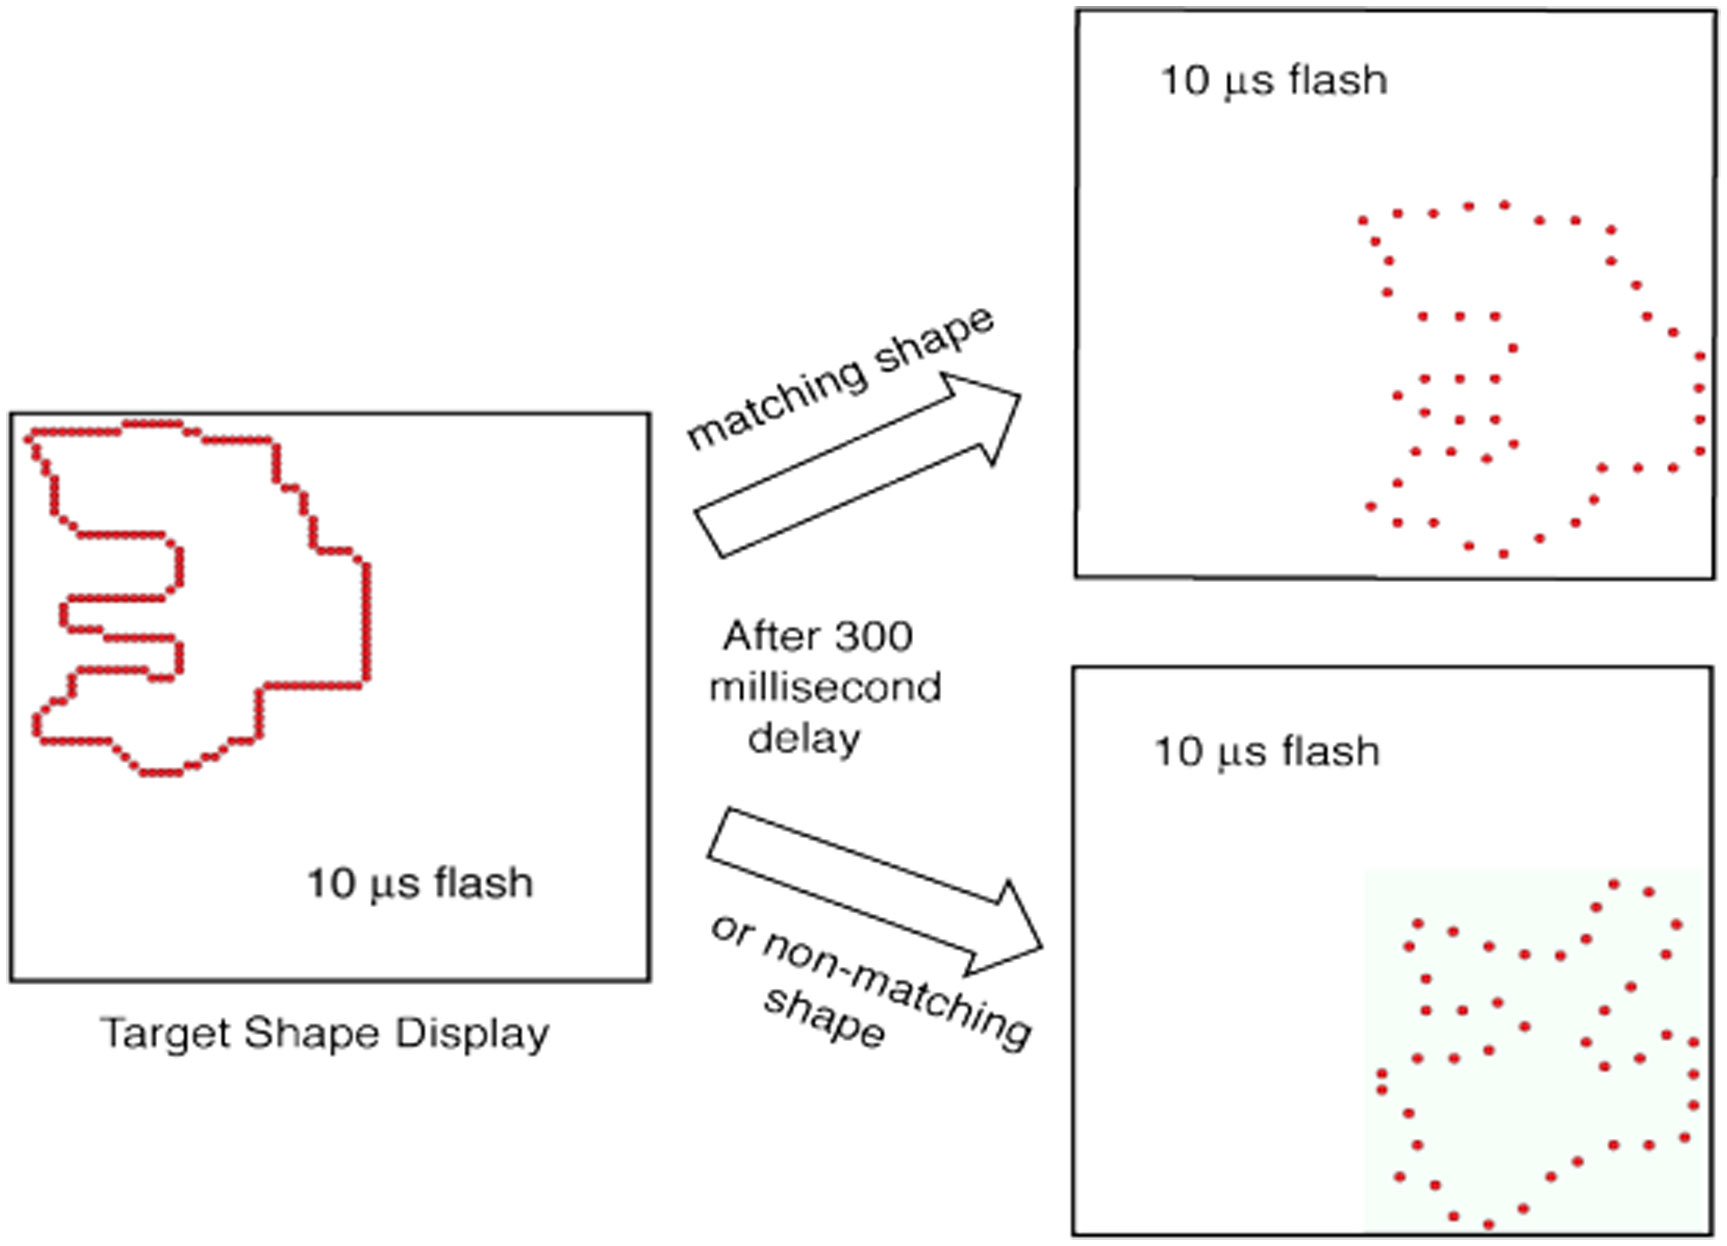 New Encoding Concepts For Shape Recognition Are Needed